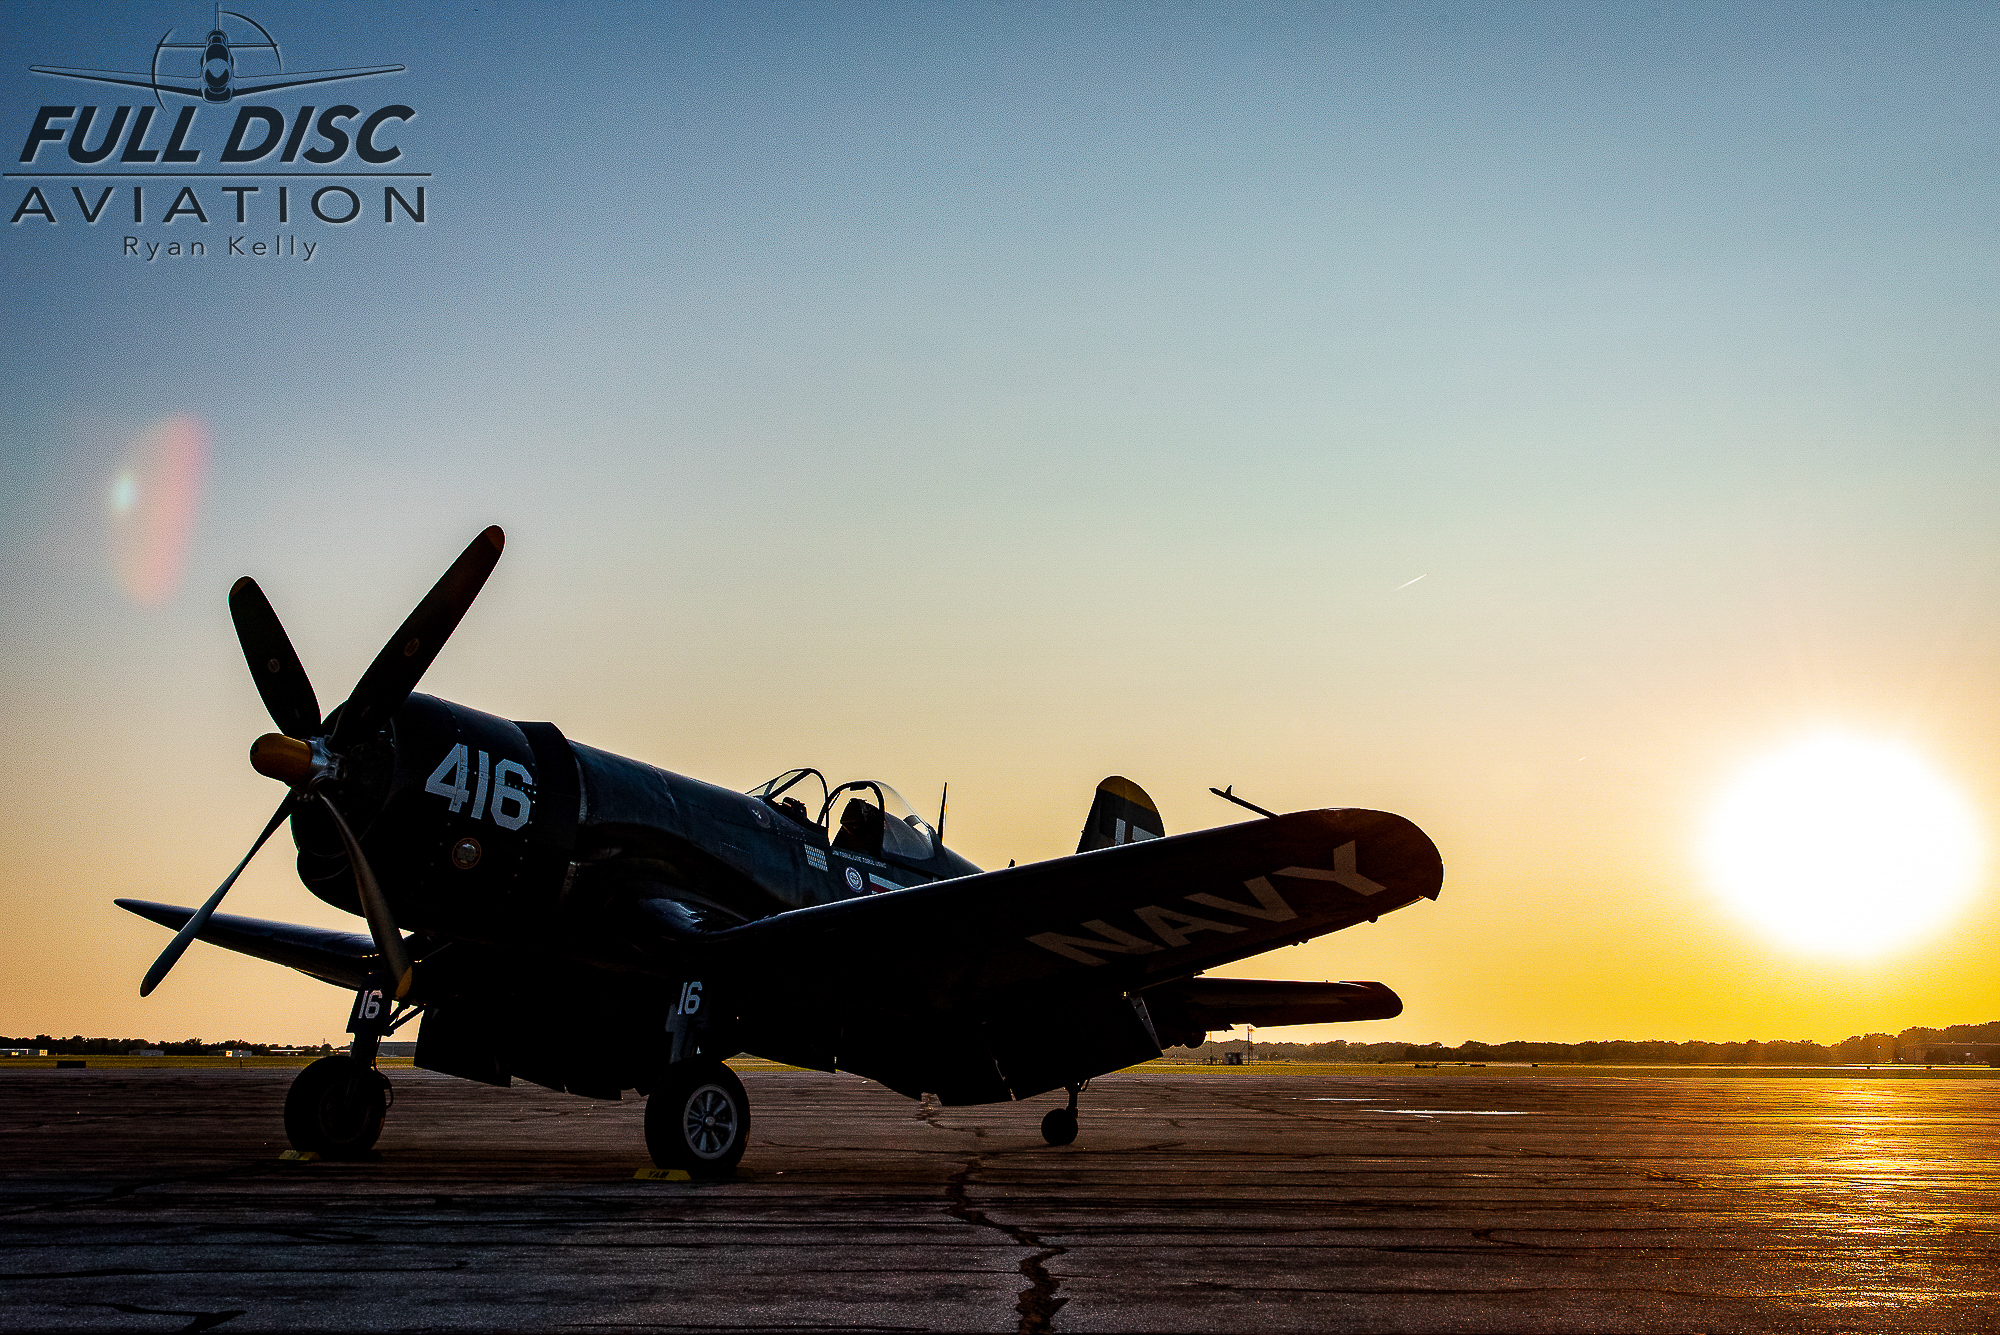 ClassOf45_FullDiscAviation_RyanKelly_August 01, 2019_01.jpg